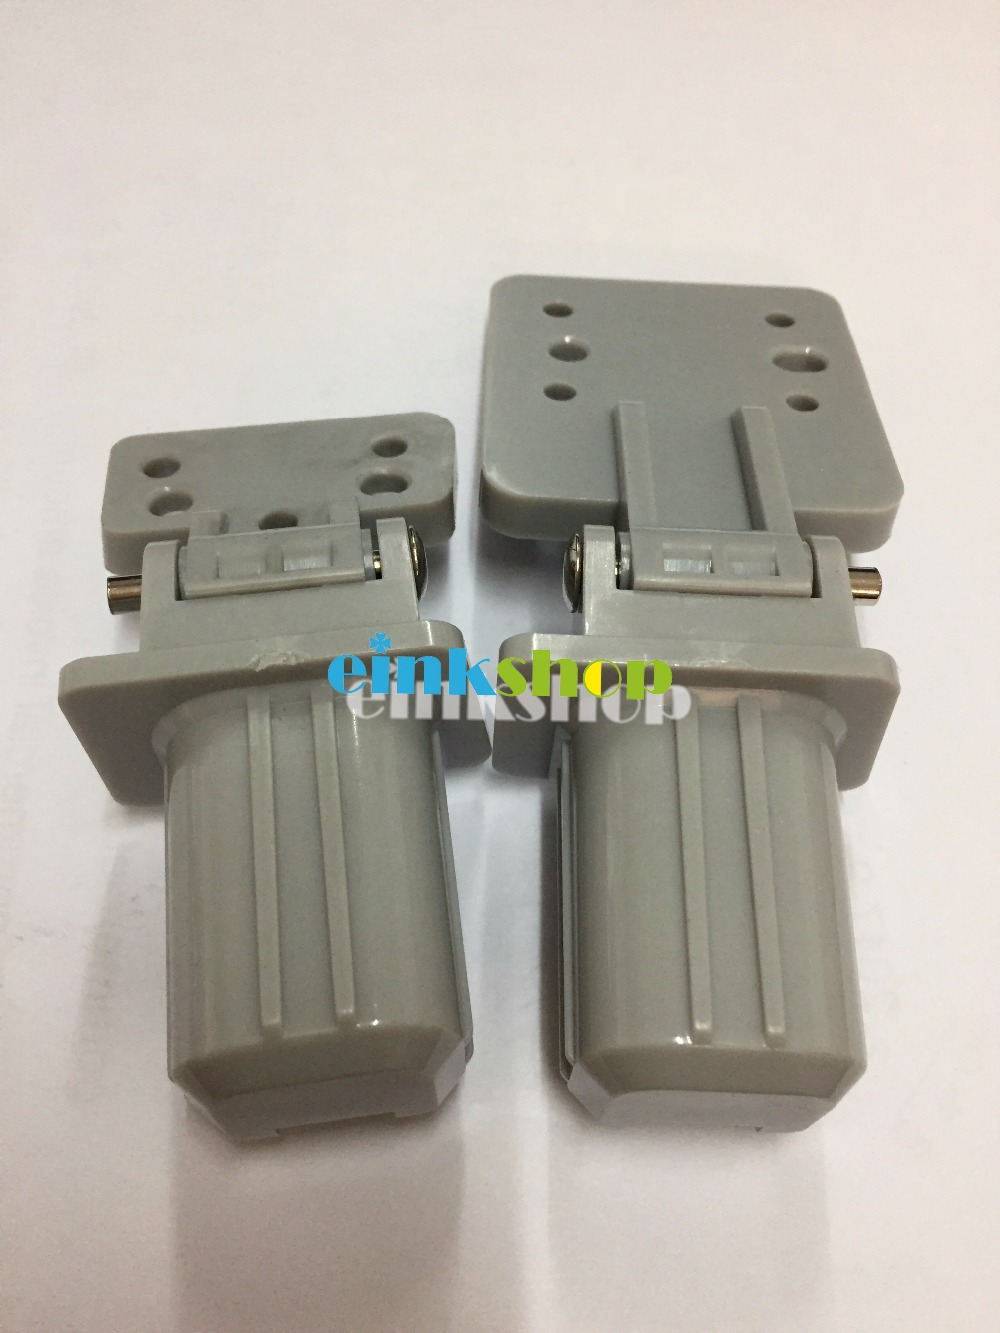 einkshop Brand ADF Hinge for HP M2727 M2727NF 2727 2727NF 1312 2320 3390 3380 2840 printer ADF assembly hinge kit Q3948-67905 1 set original x cc483 40002 adf hinge assy for hp clj cm3530 series